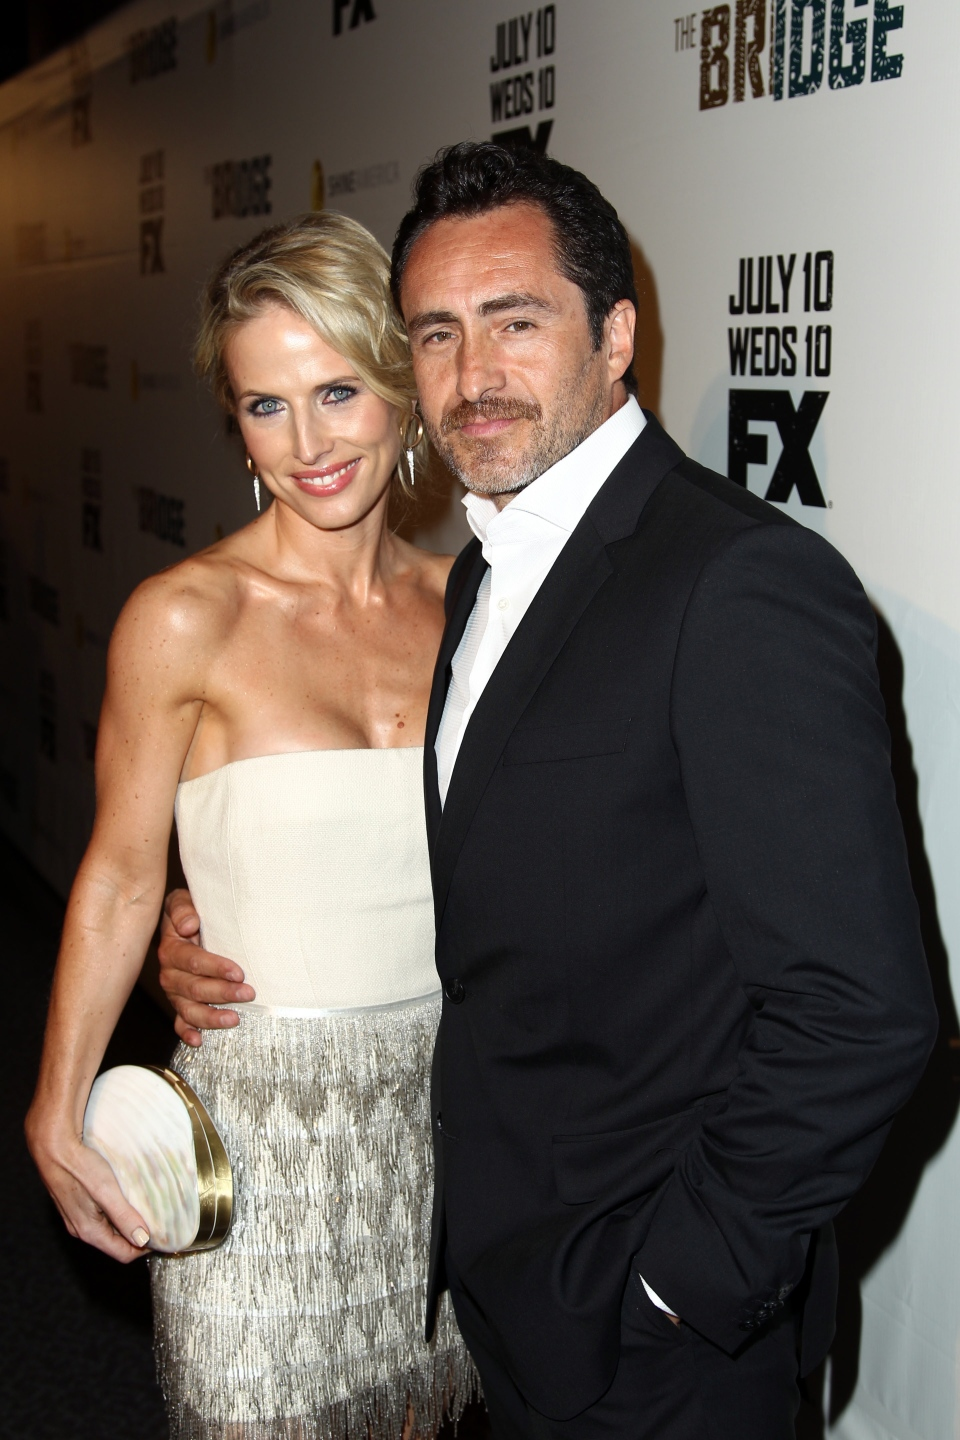 Demian Bichir, right, and Stefanie Sherk arrive at the premiere screening of 'The Bridge' at the DGA Theatre in Los Angeles on Monday, July 8, 2013. (Matt Sayles/Invision)